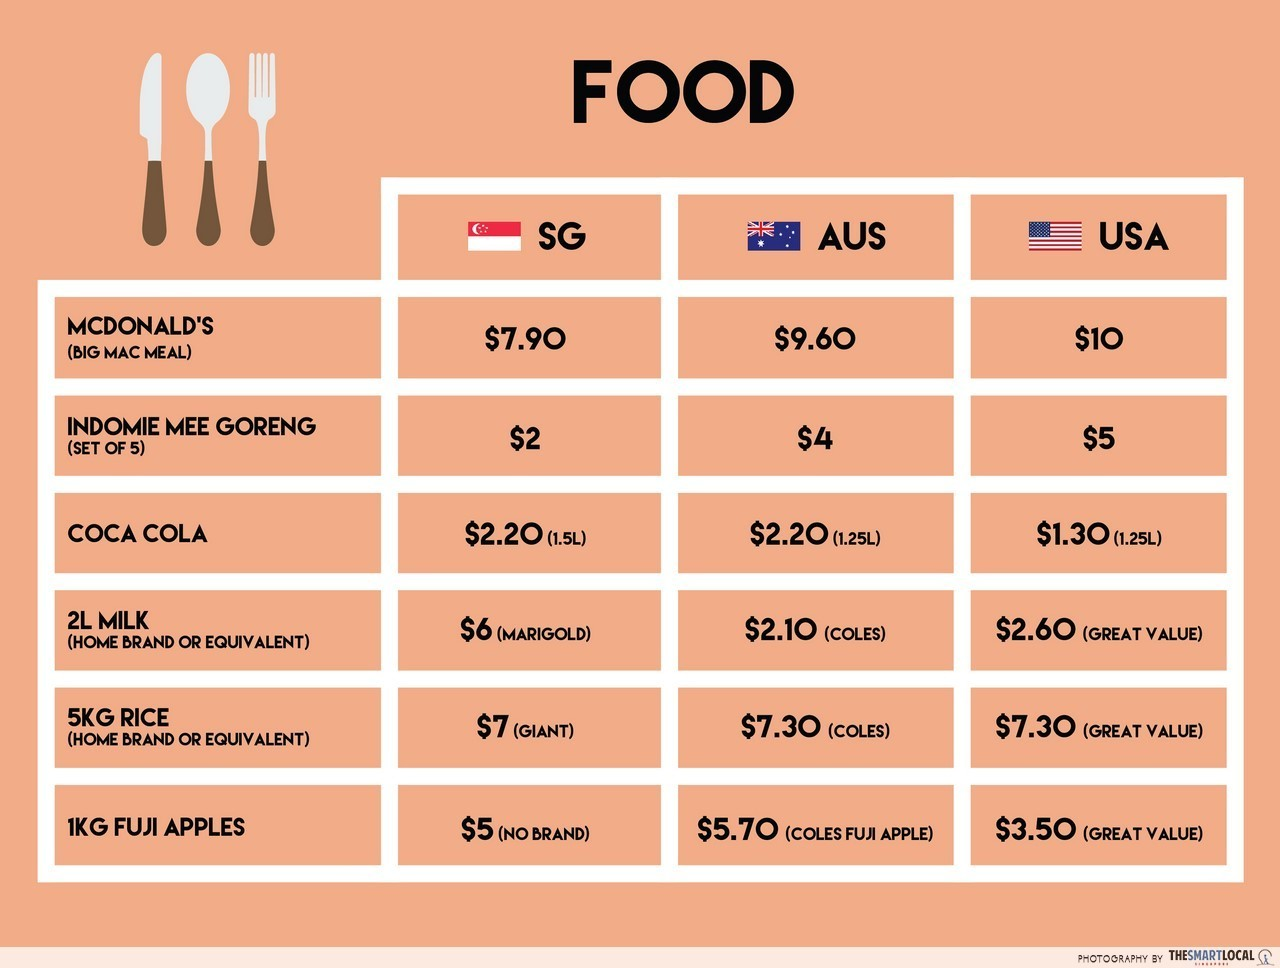 Cost of living: Australia vs USA